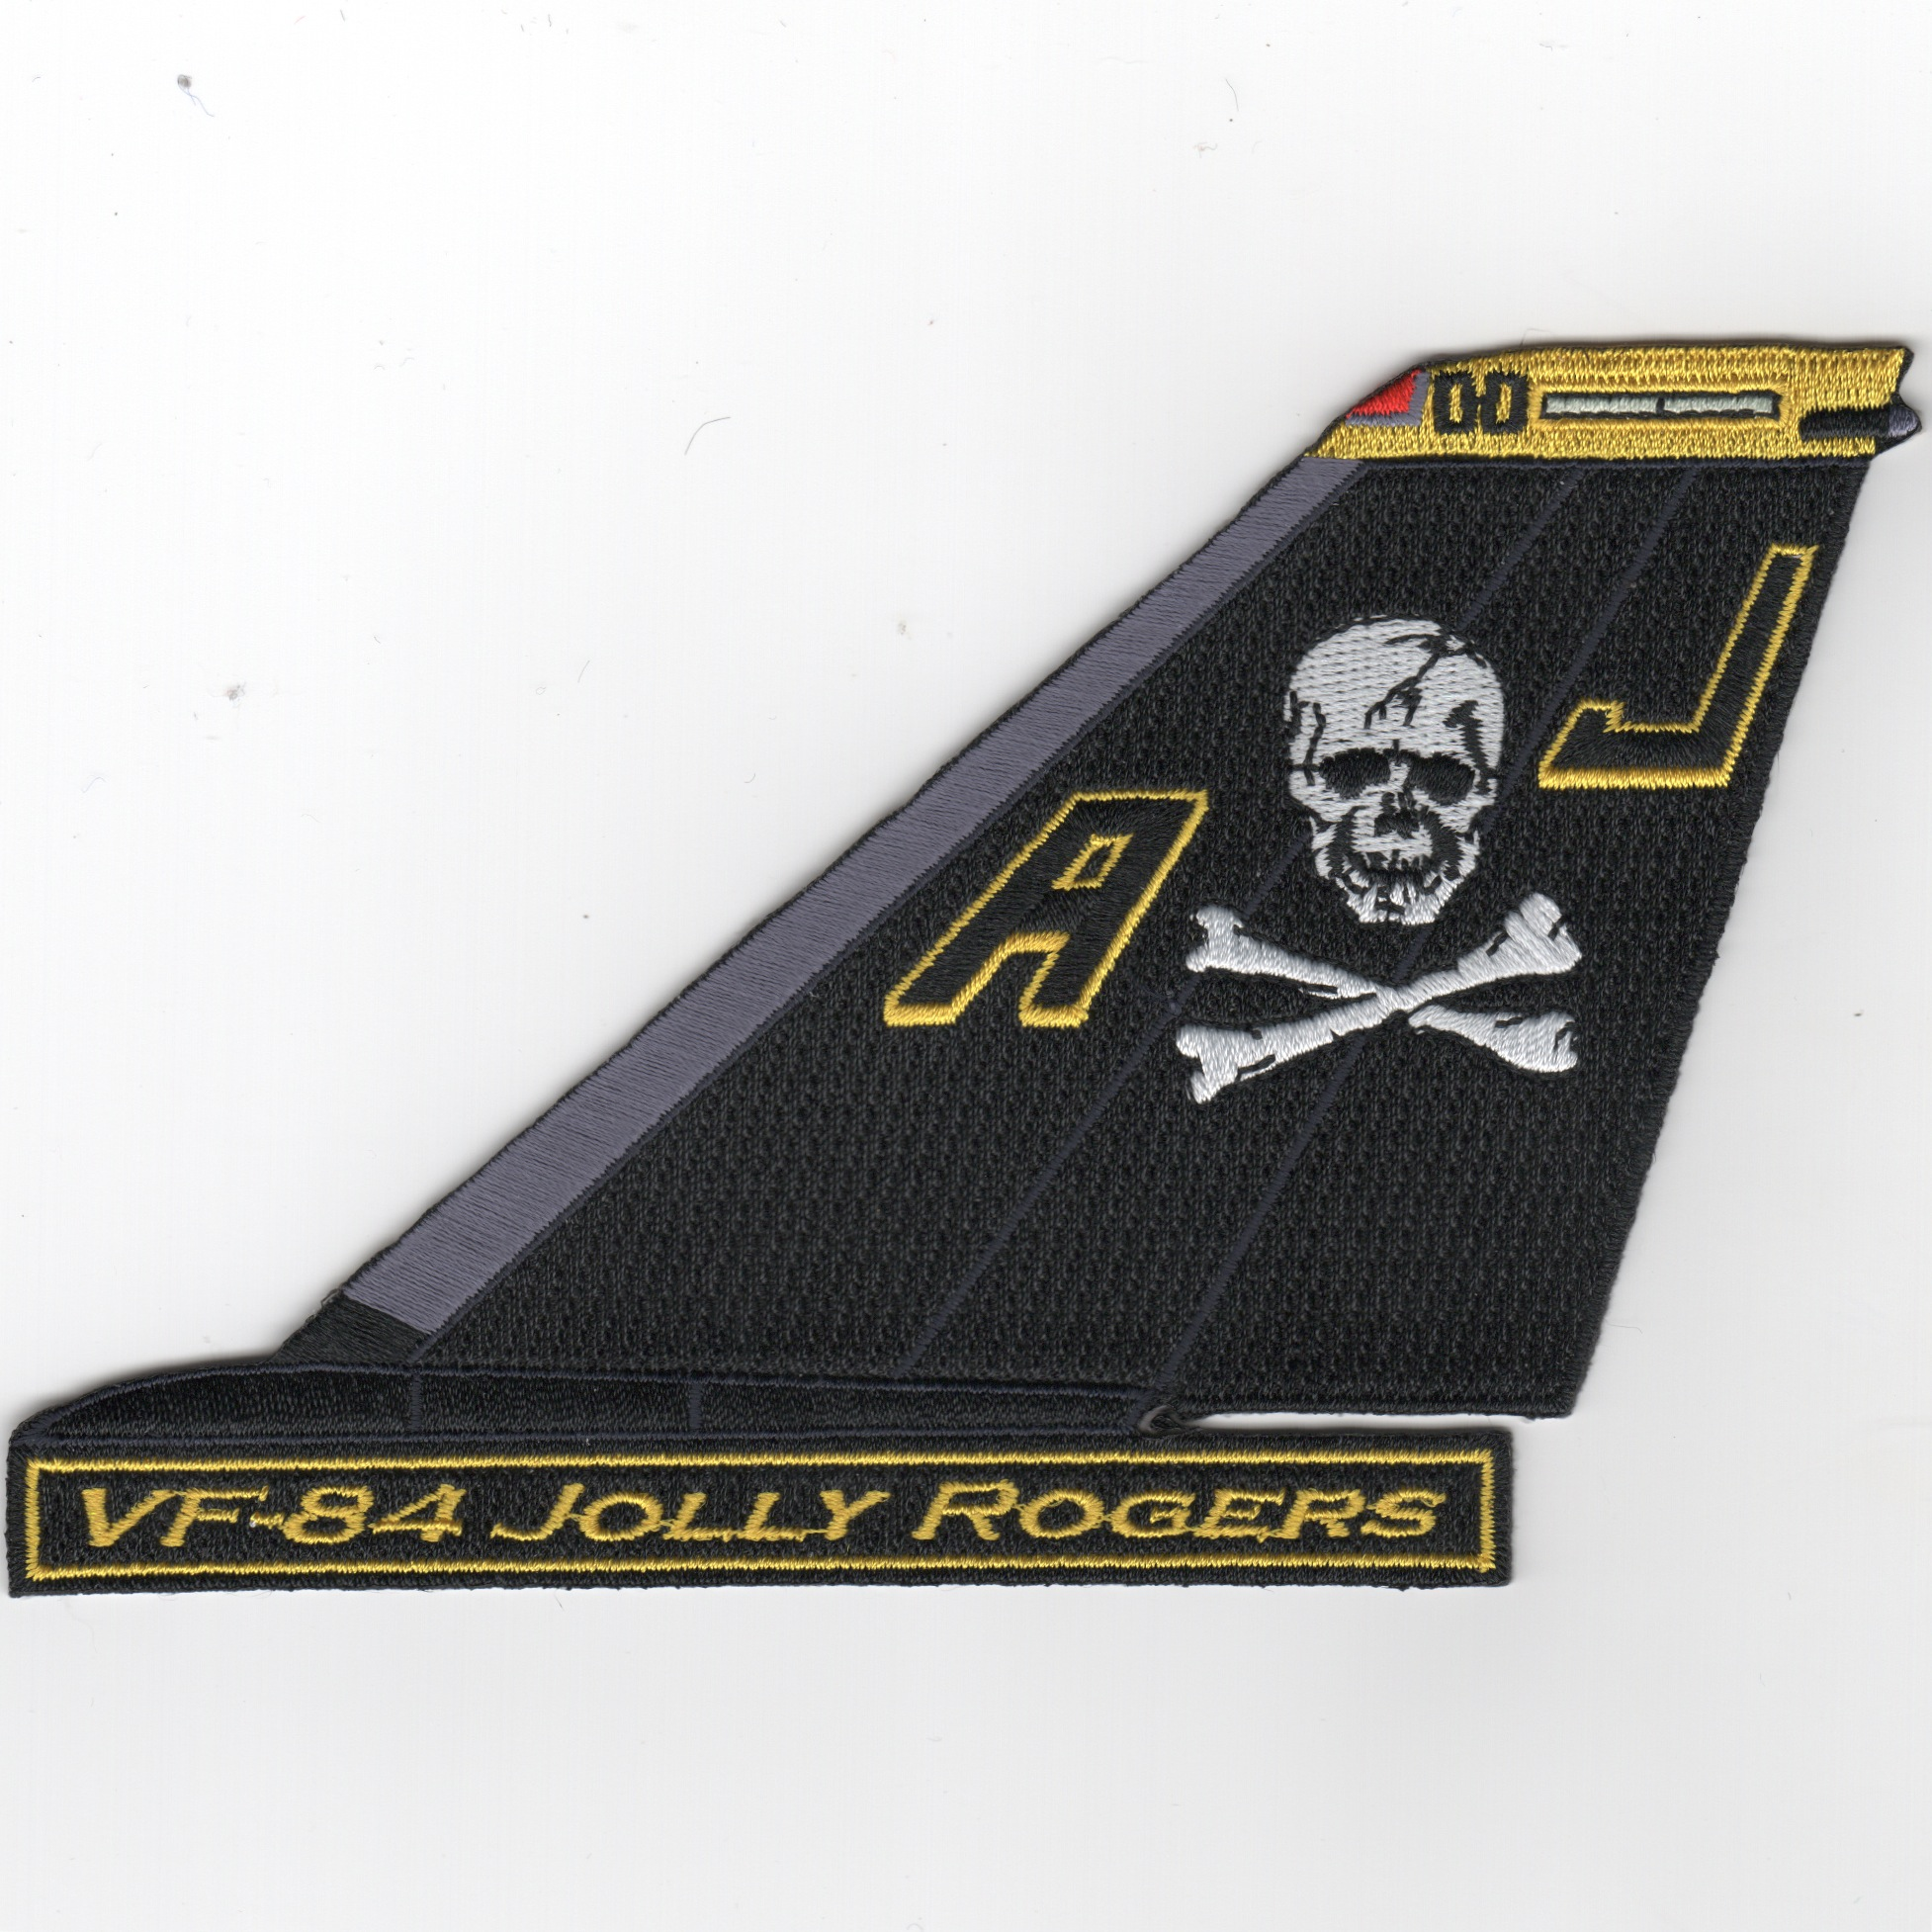 VF-84 F-14 Tomcat TailFin (Text/Color)